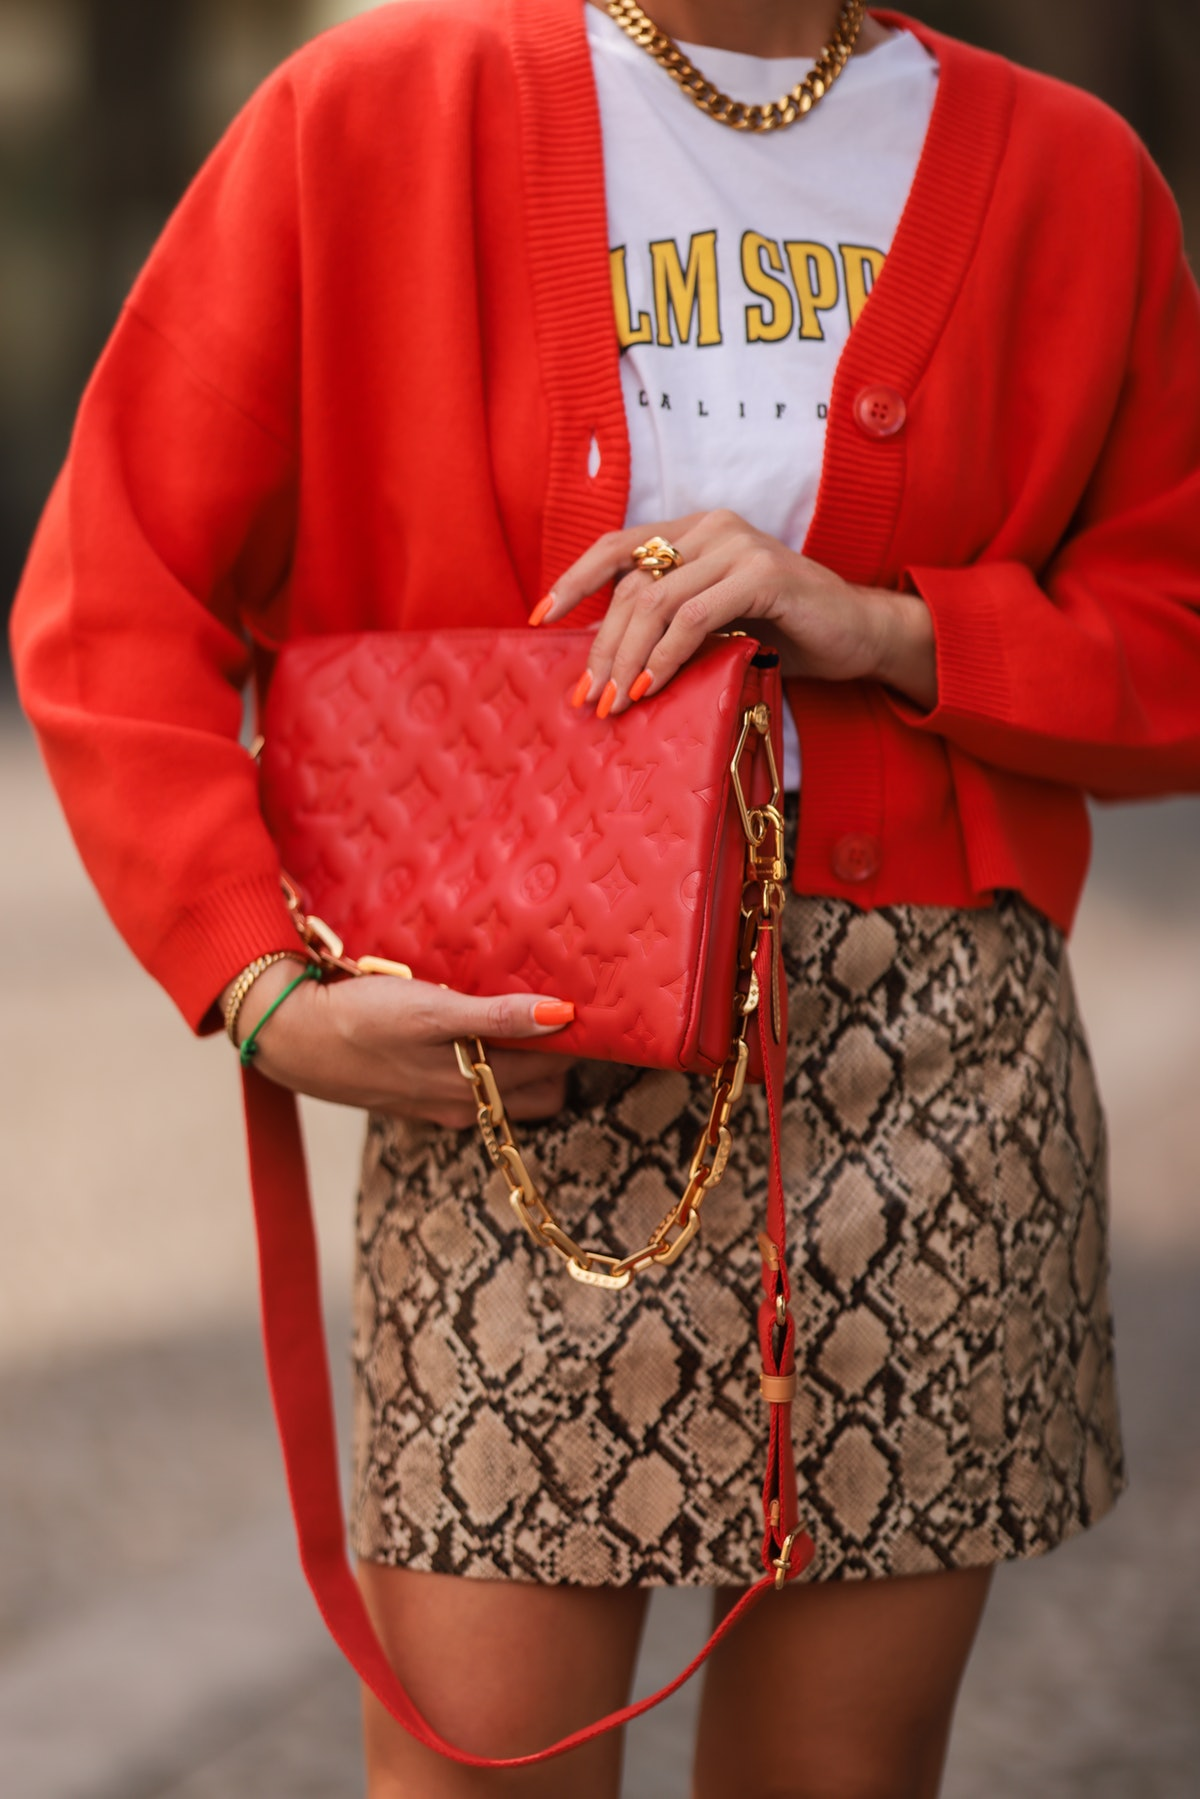 Louis Vuitton makes some of the most classic handbags of all time.